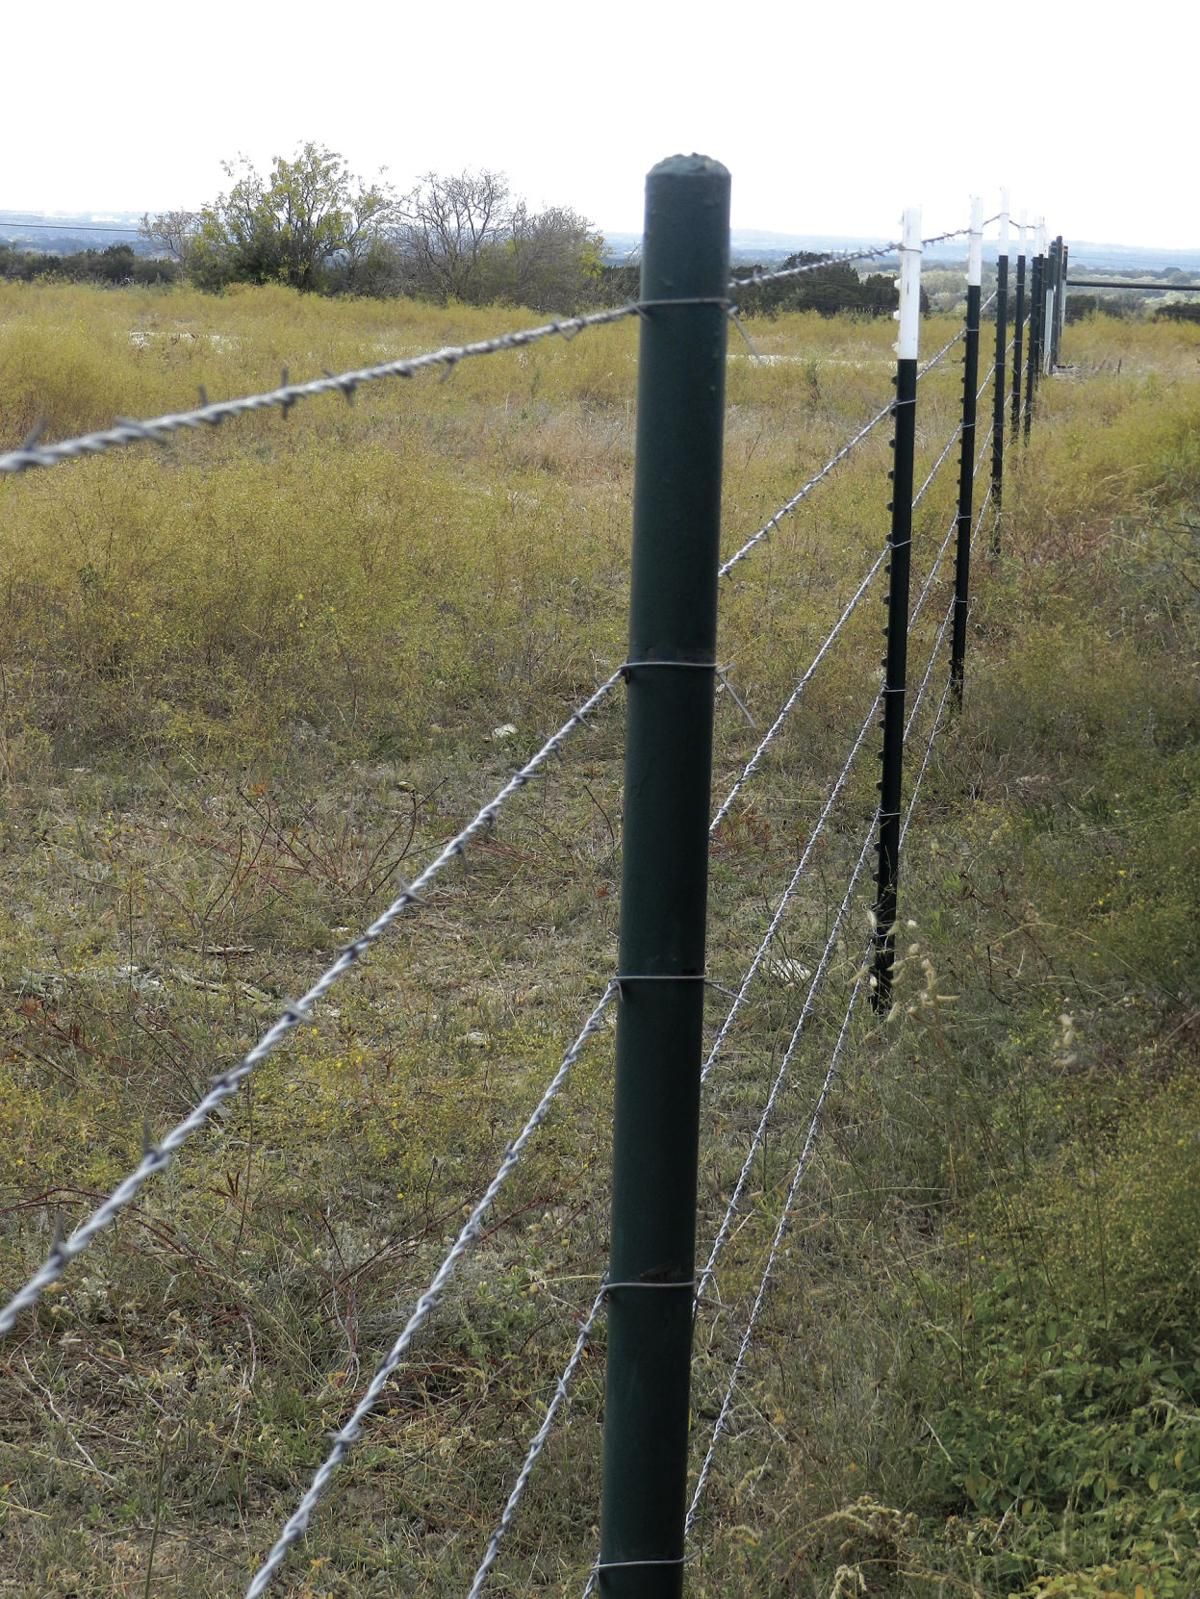 Get wired! Selection of fence wire is important | Land & Livestock ...